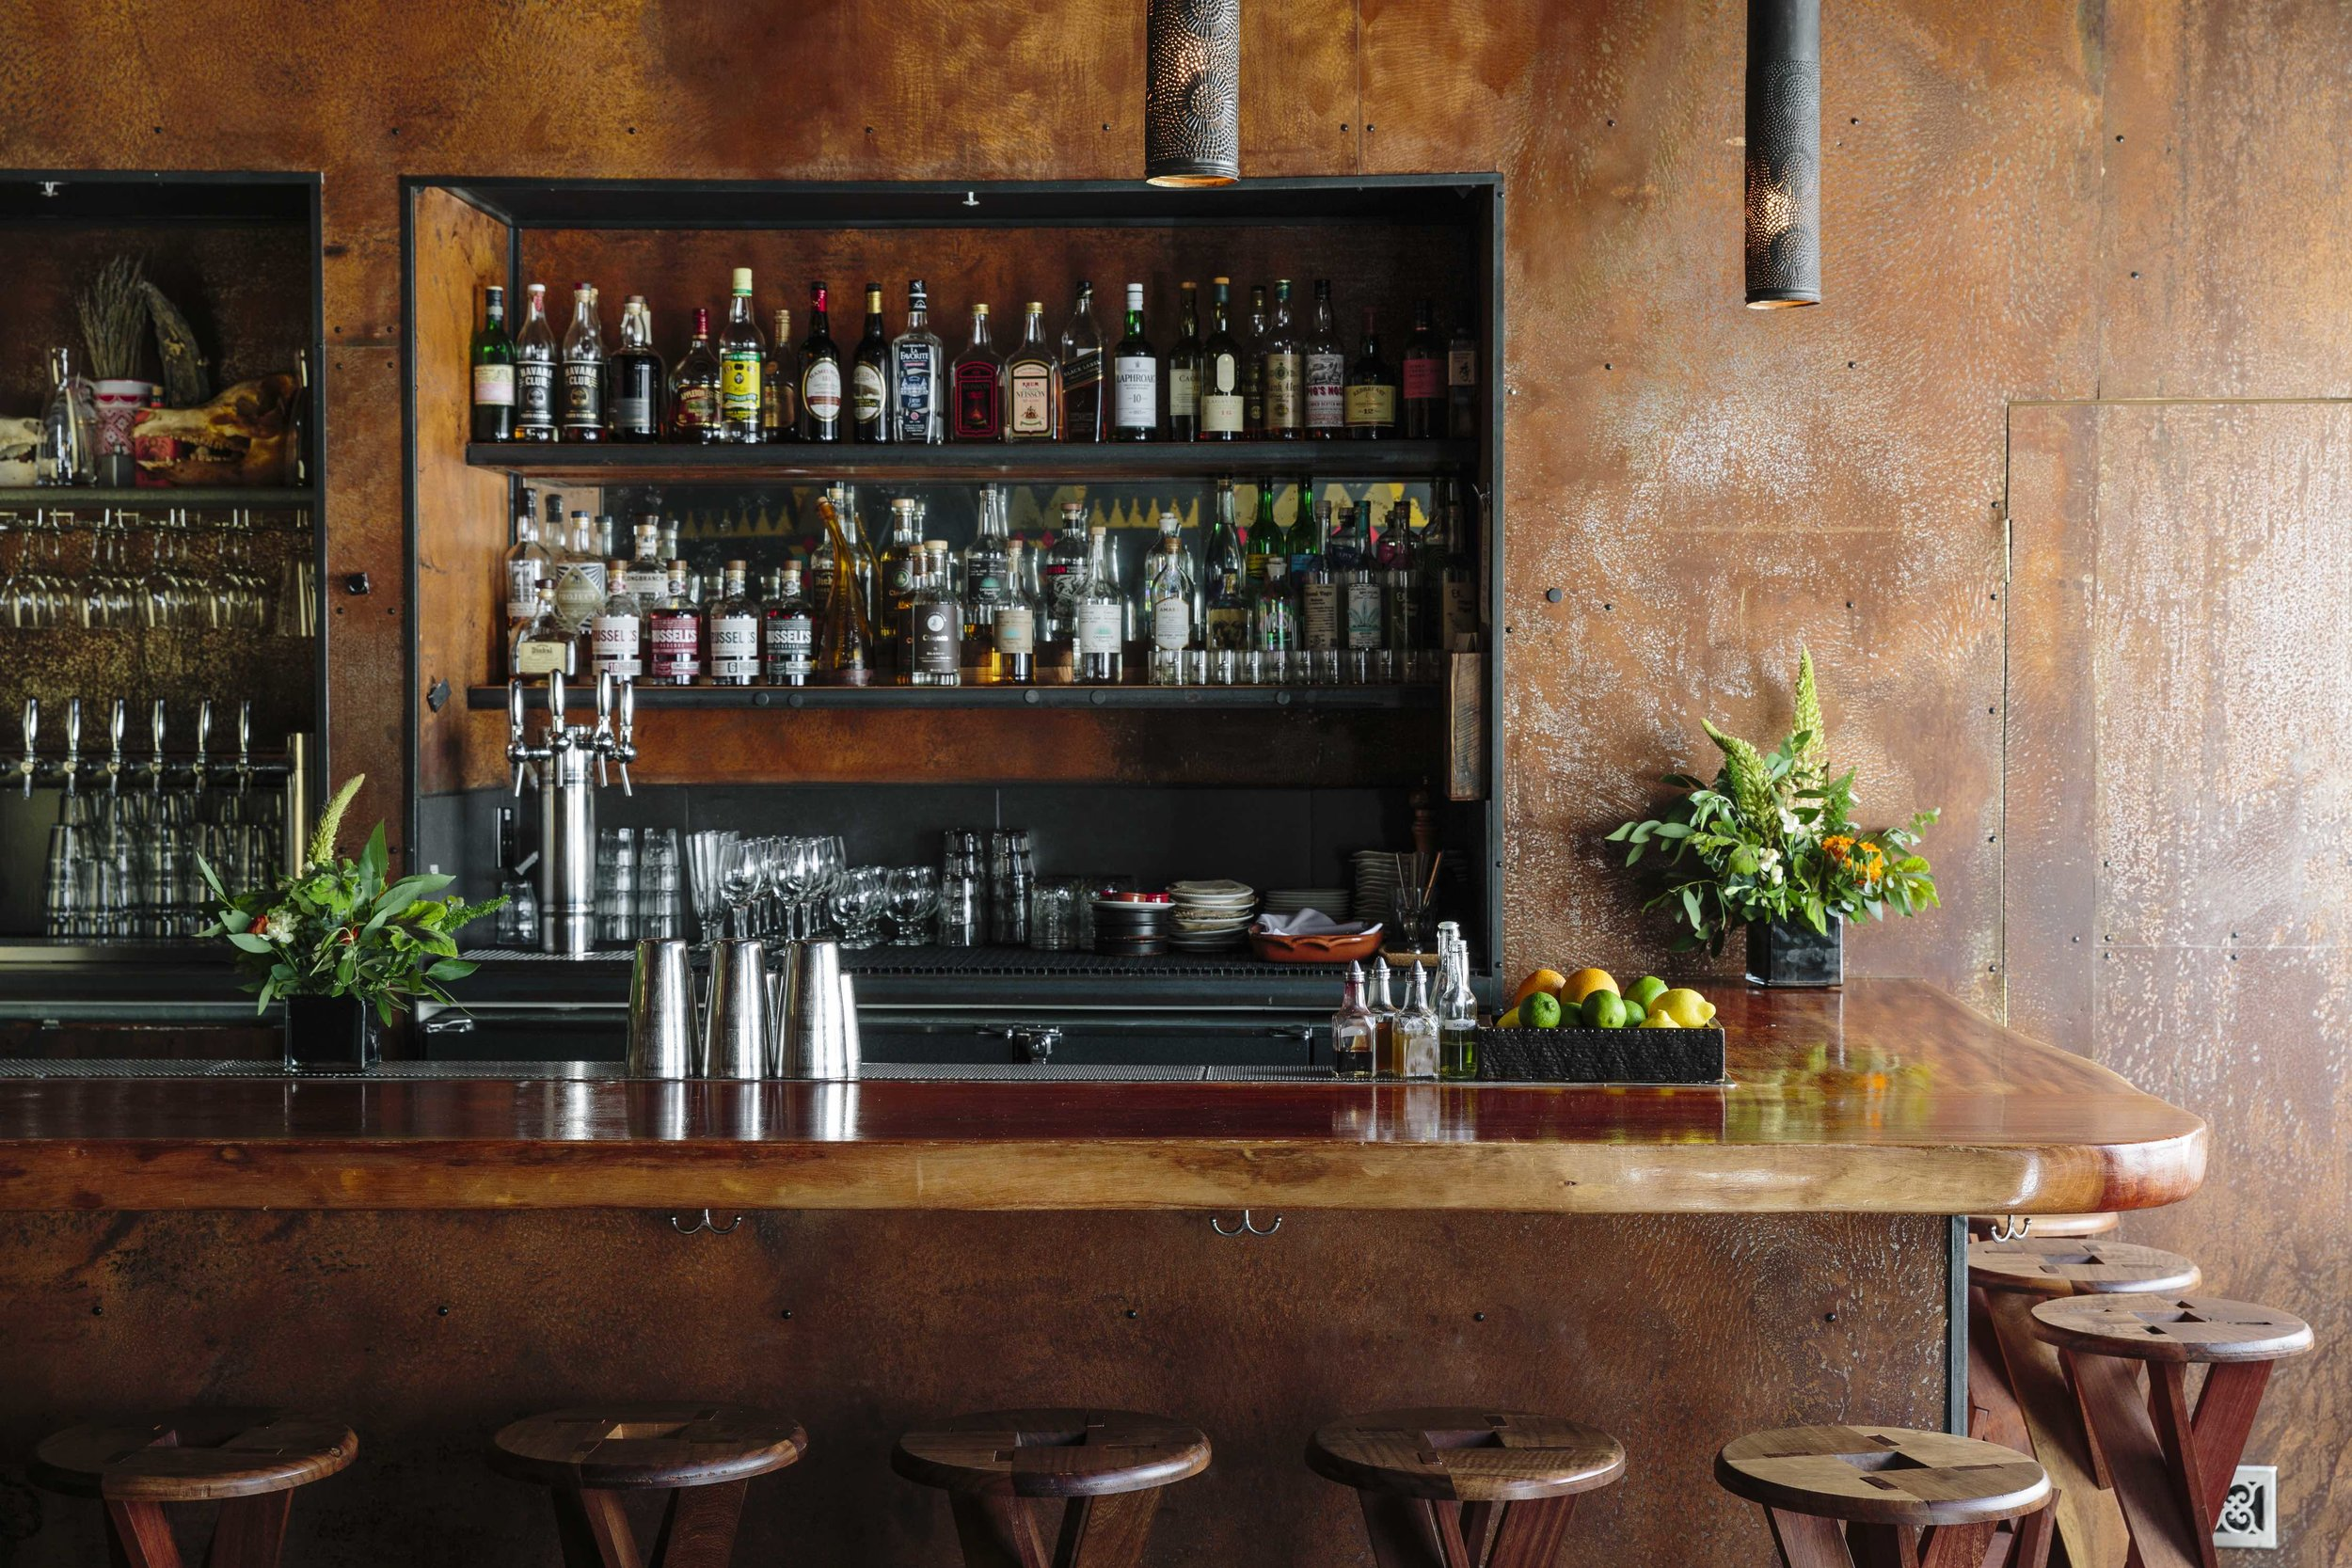 Duende bar with alcohol bottles, cups and plants